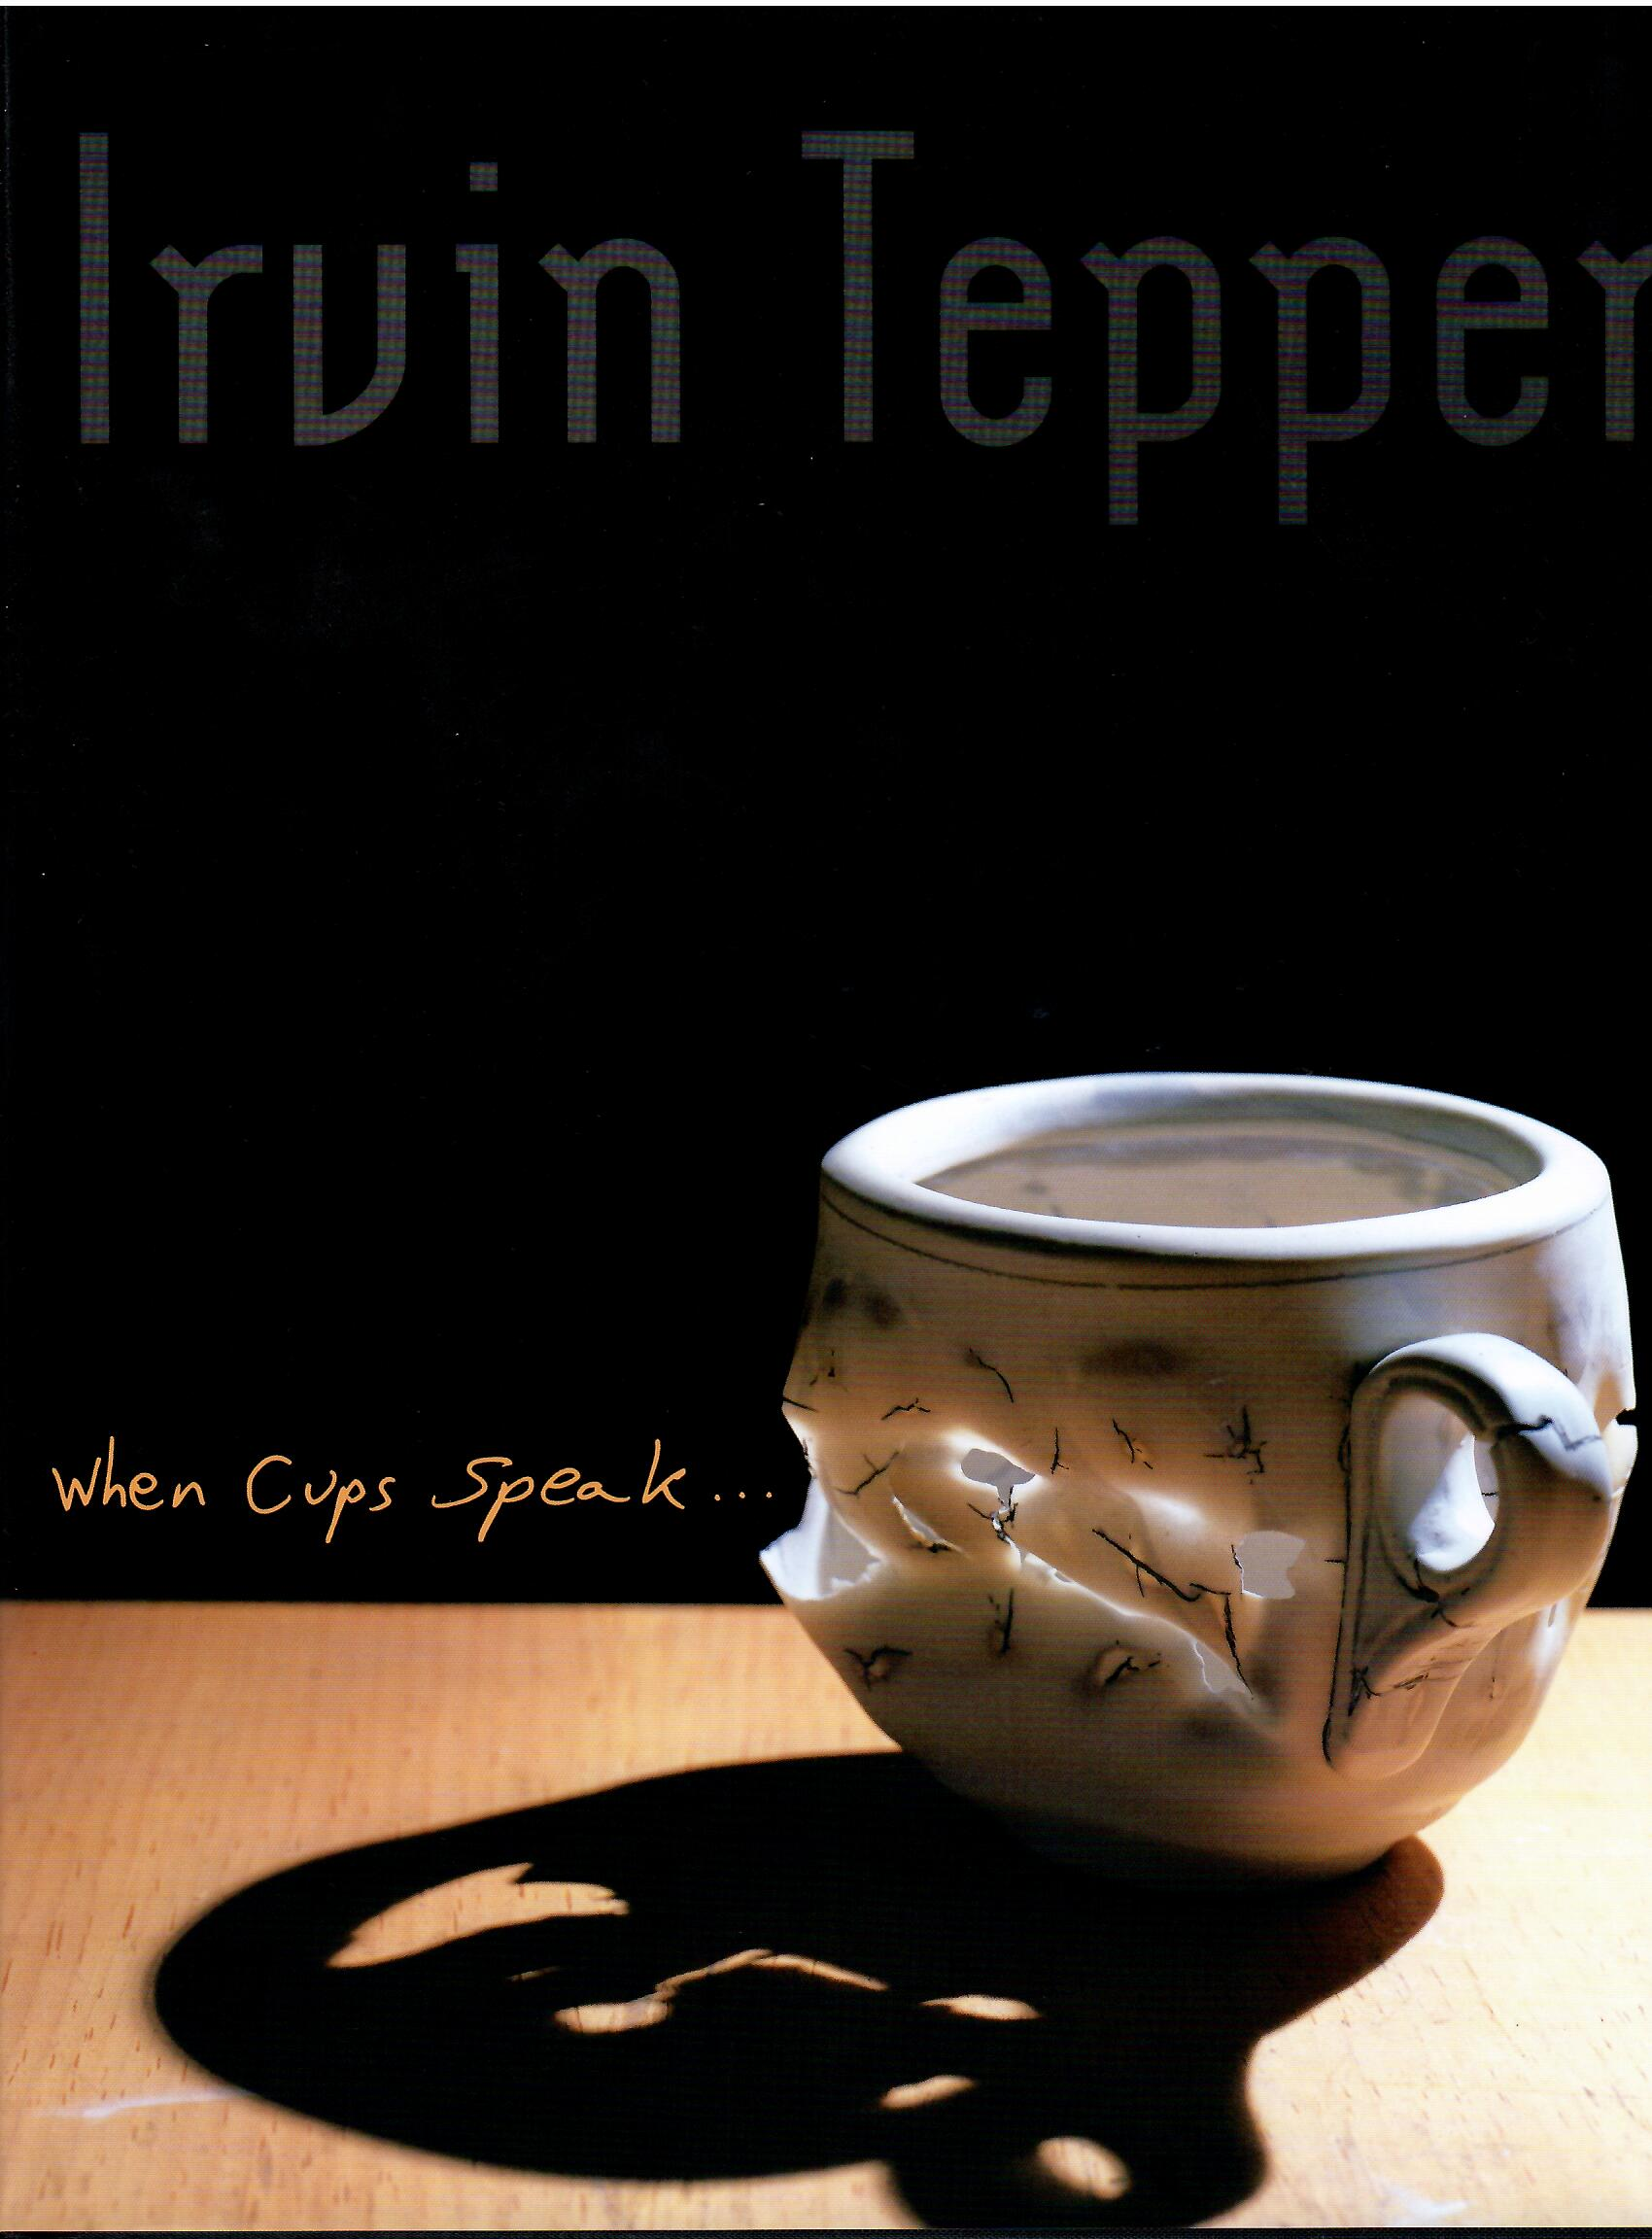 Image for When Cups Speak: Life with the Cup: ; a 25-Year Survey; Irvin Tepper: